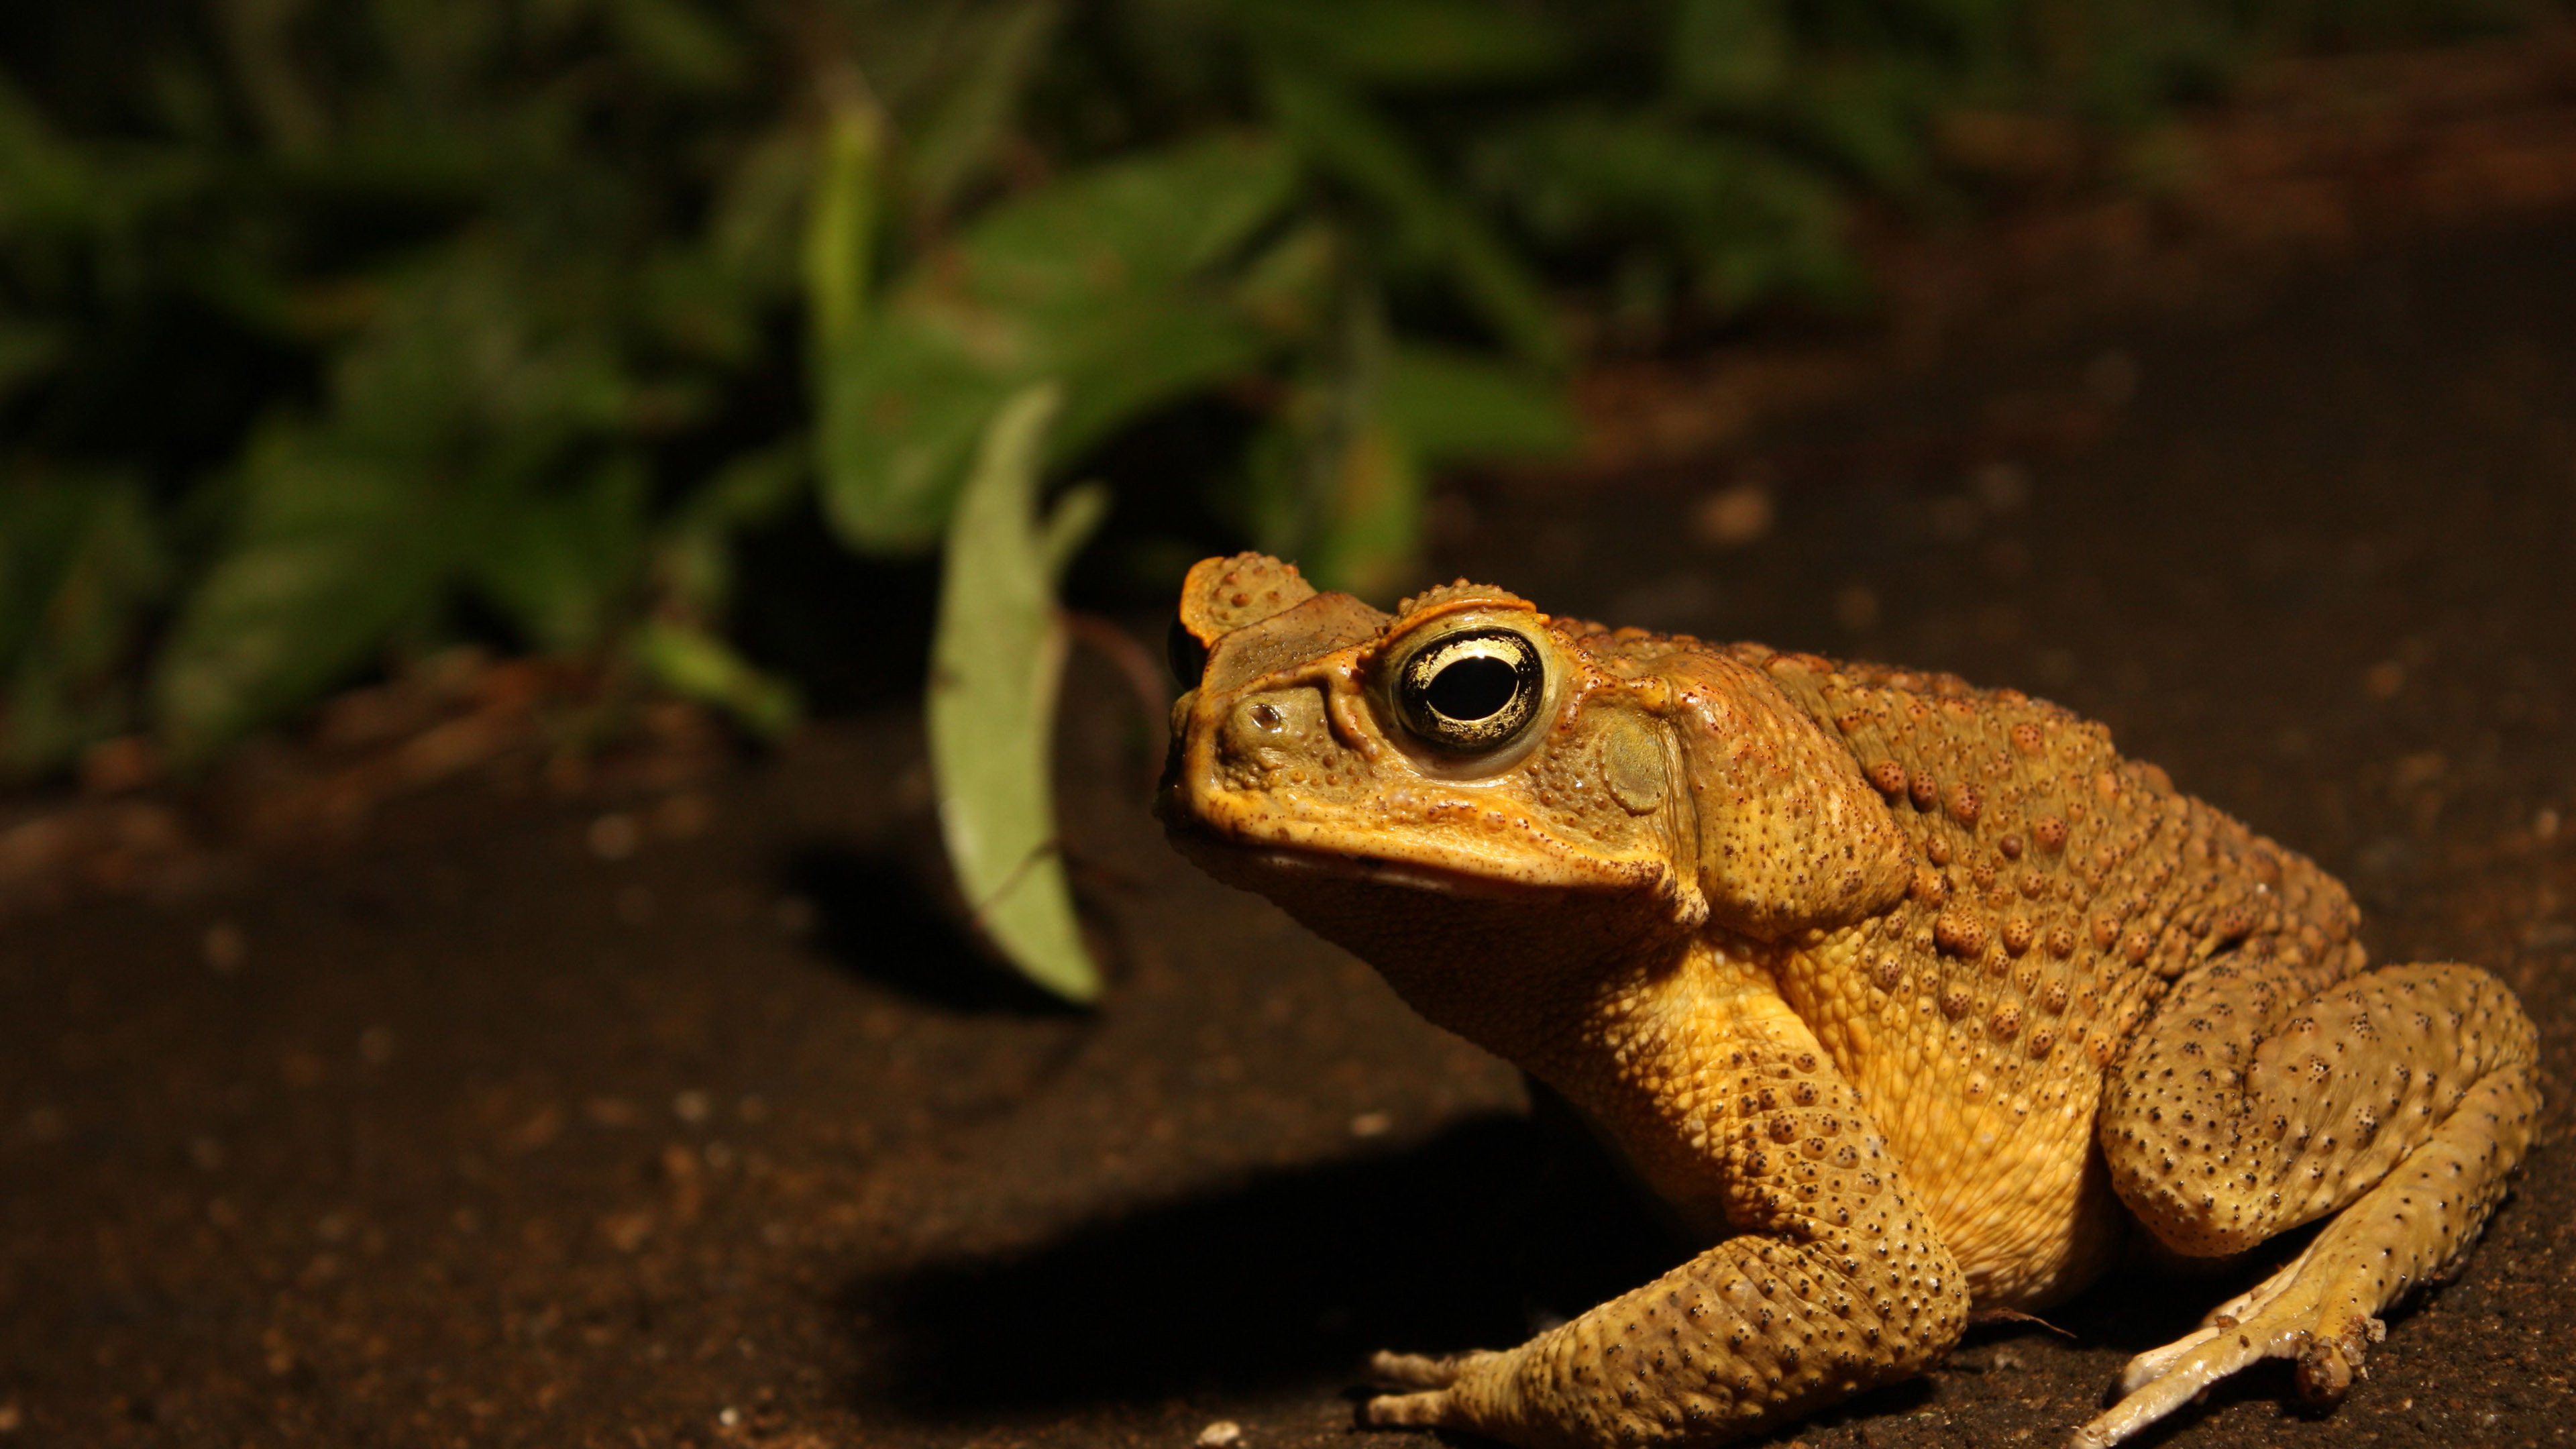 Toad on the sand 4k animal desktop wallpapers 25613 Wallpapers